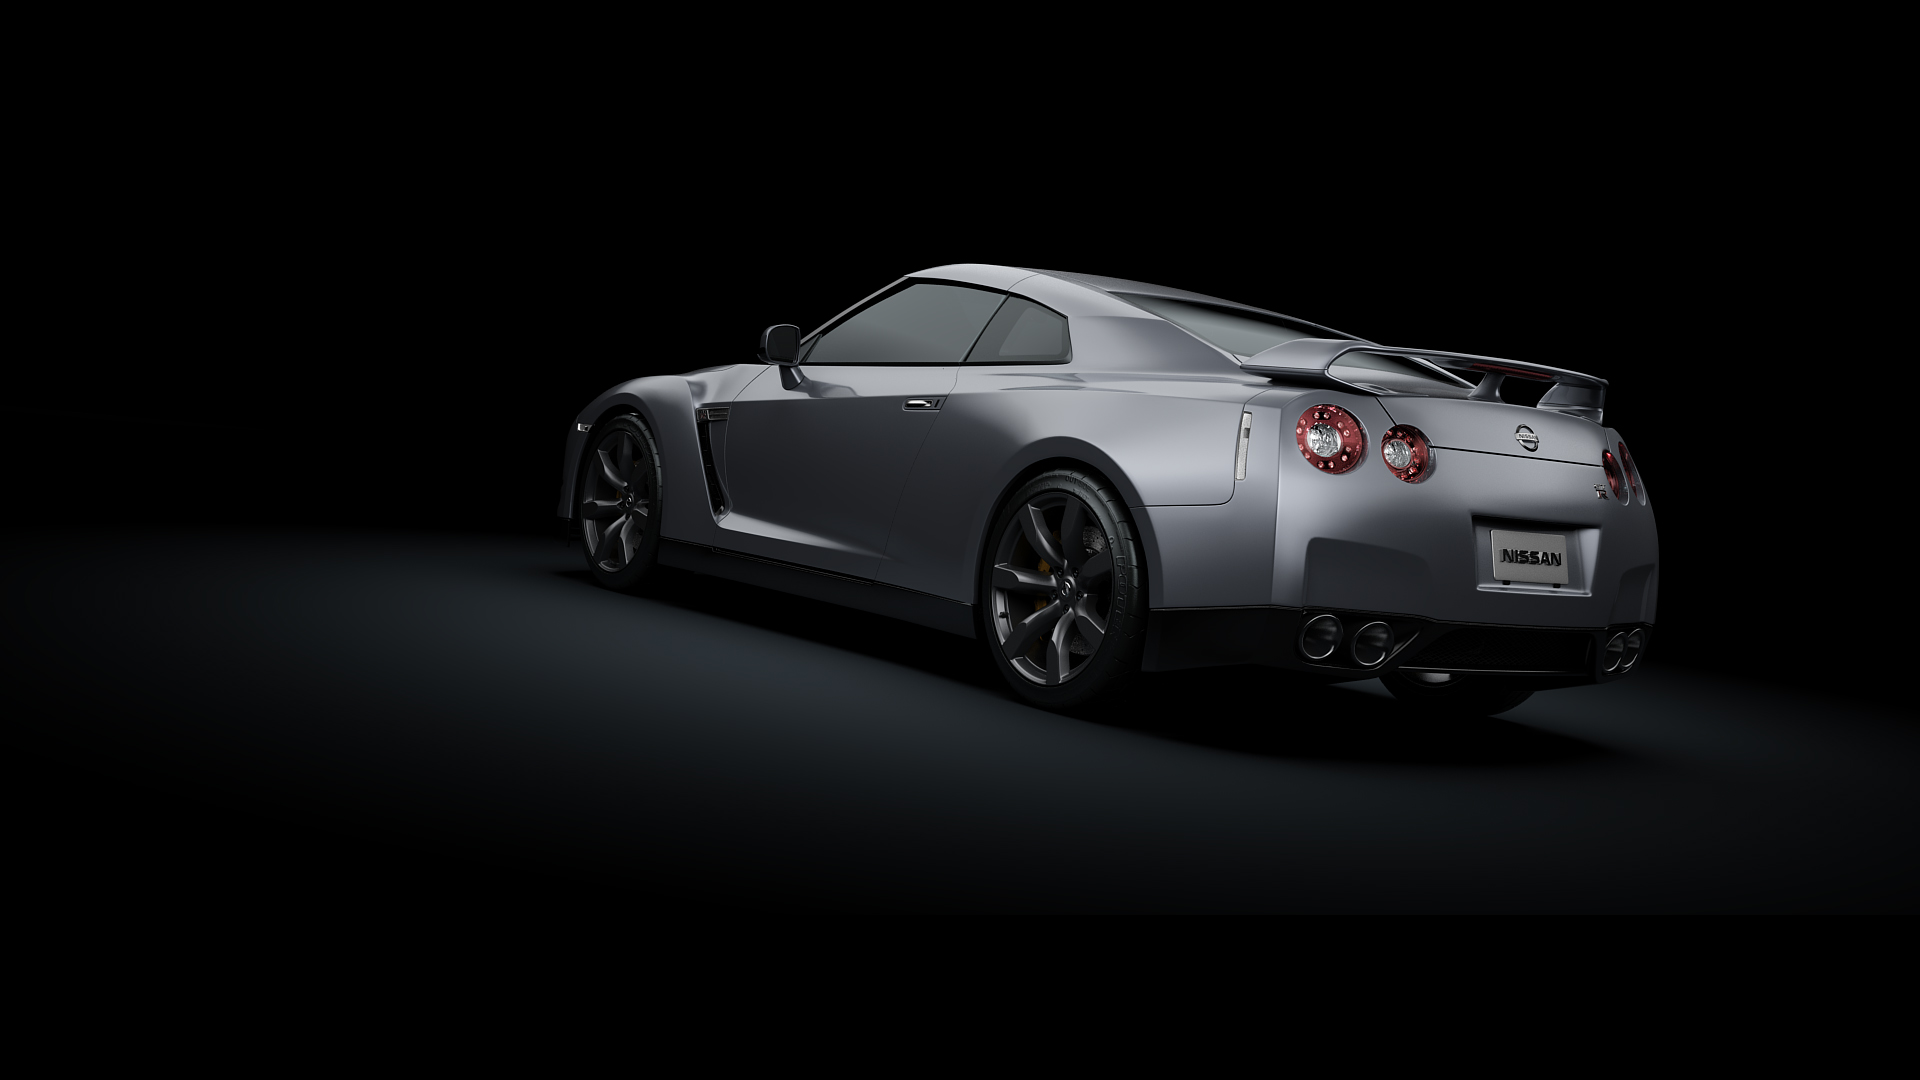 The Nissan GT-R Wallpapers